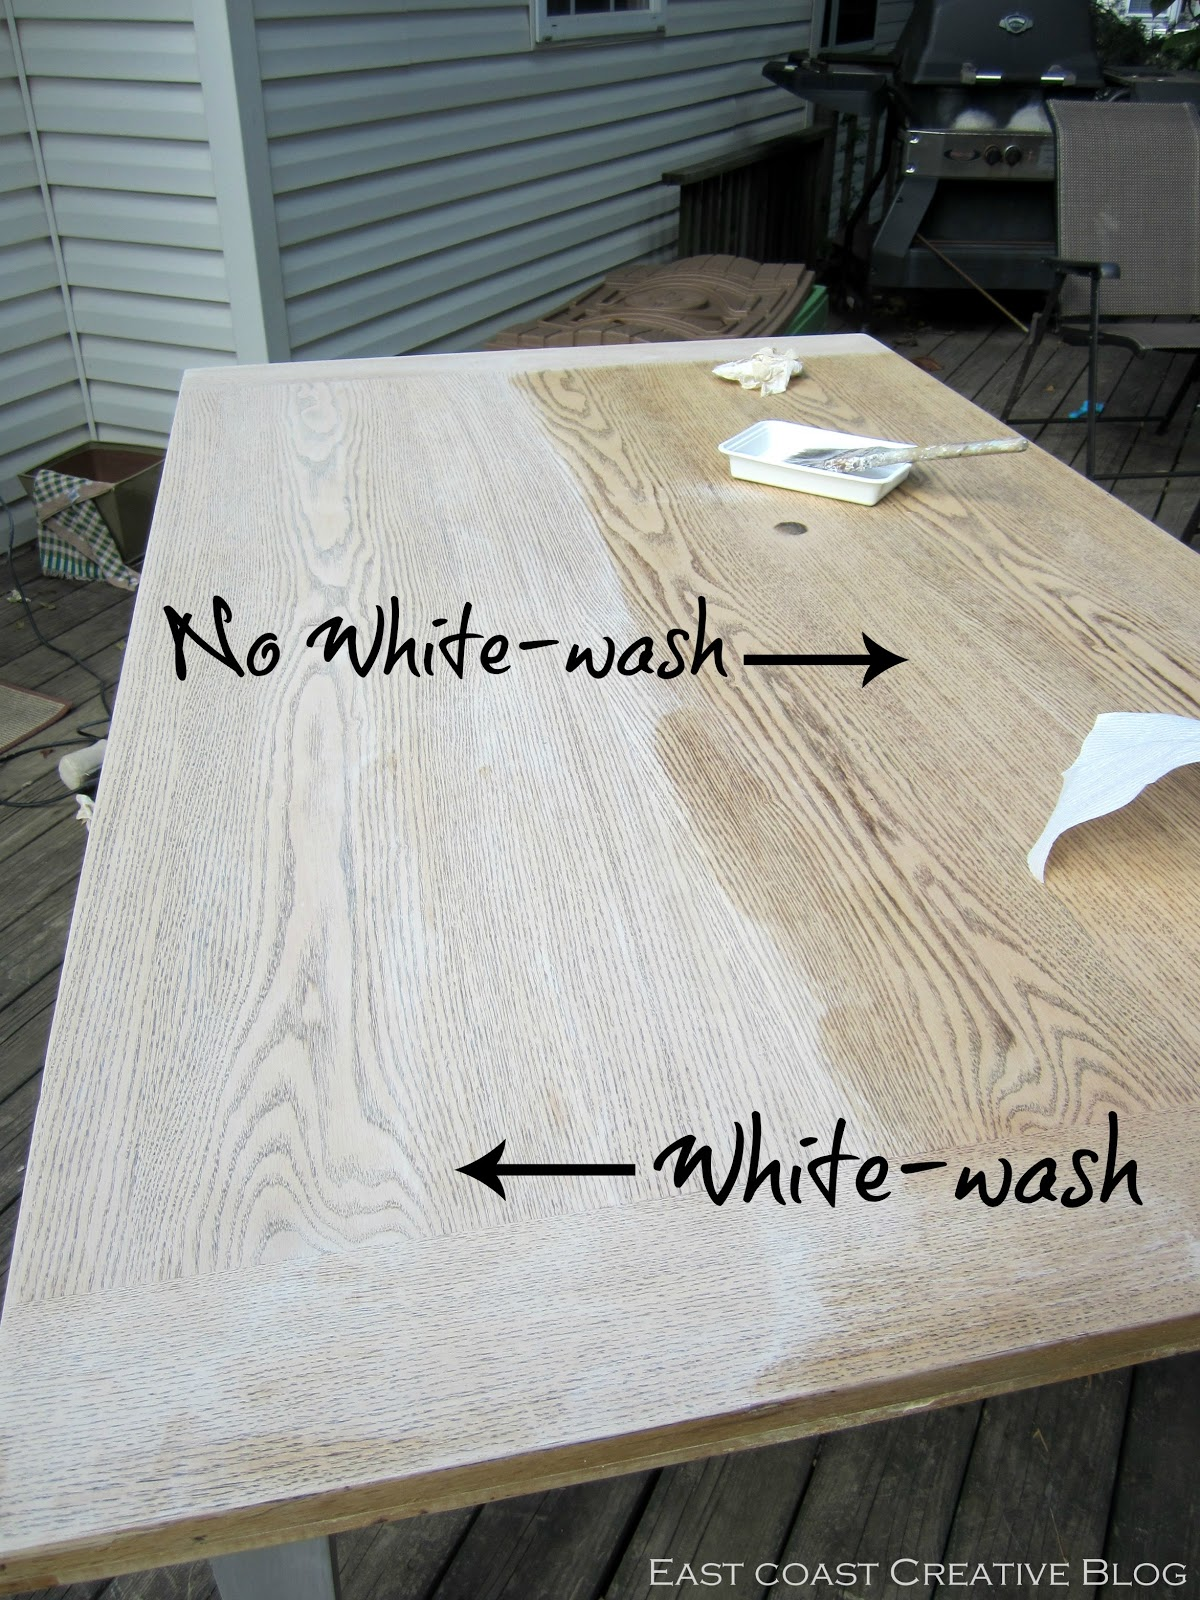 Wiping The Wash Back Helps Brings Color Of Grain Out Which Gives It A Very Reclaimed Wood Finish